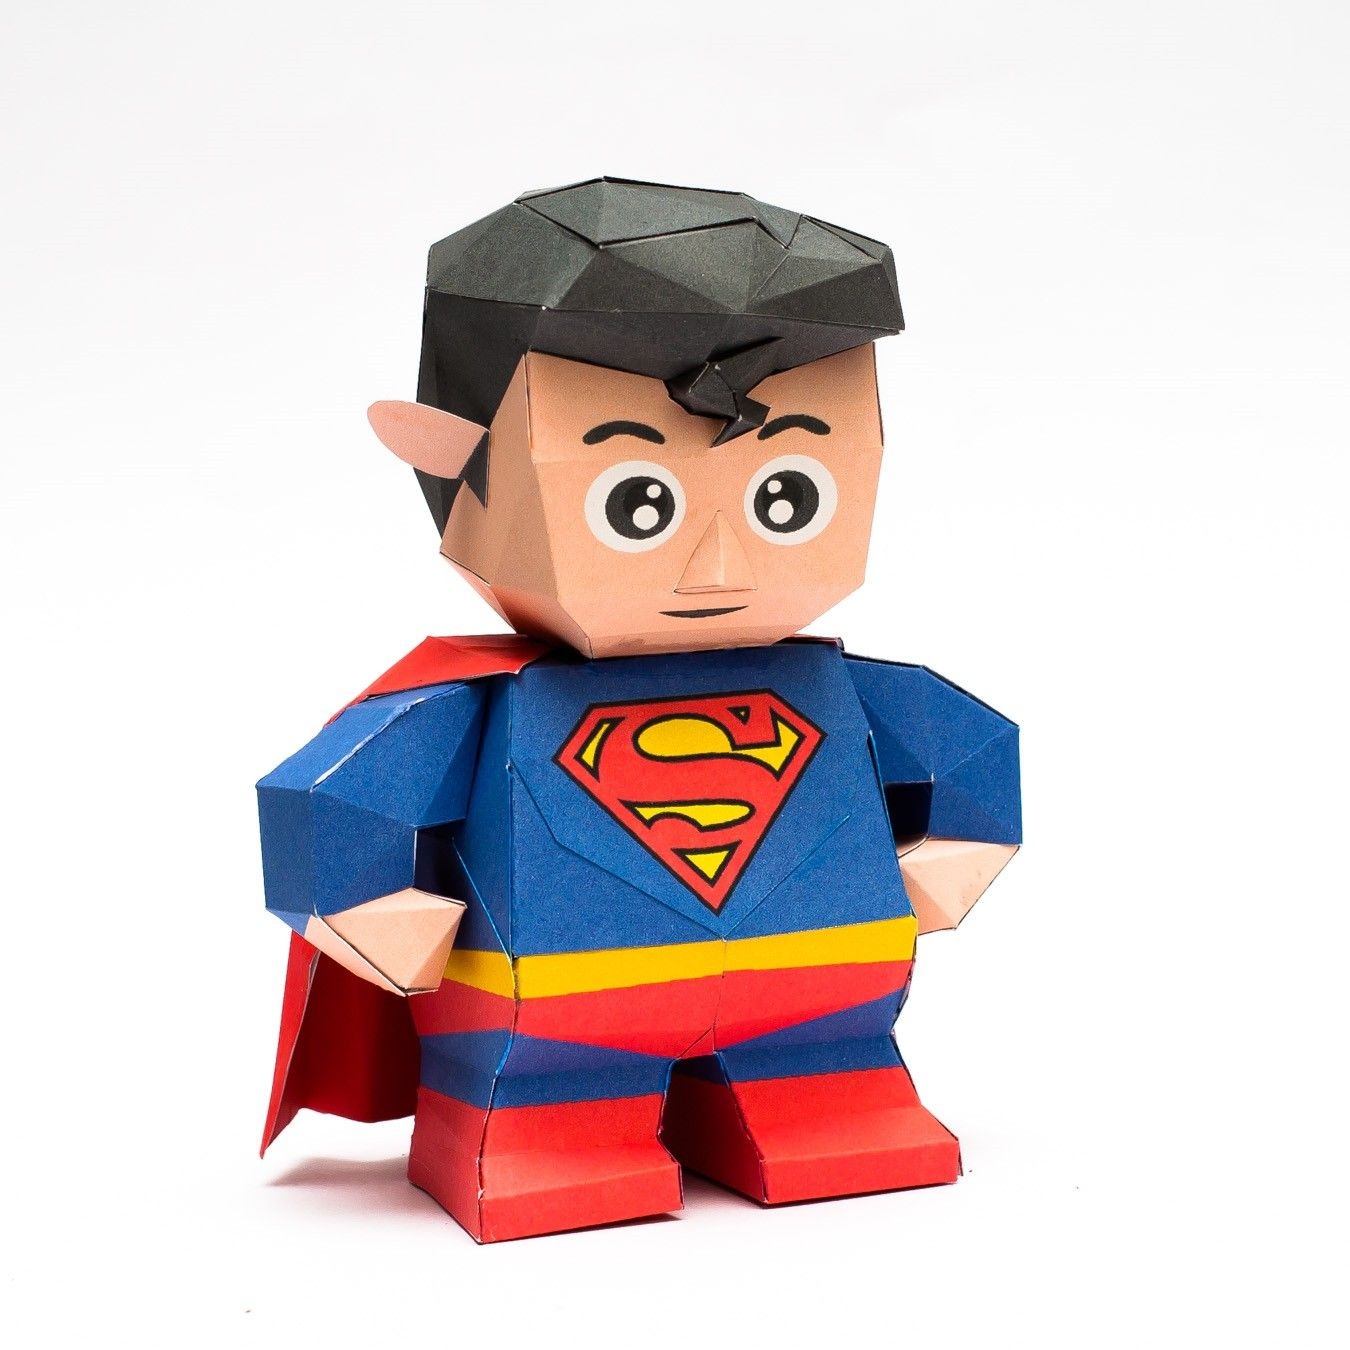 Chibi superman papercraft model by mookeep download free template chibi superman papercraft model by mookeep download free template here jeuxipadfo Image collections